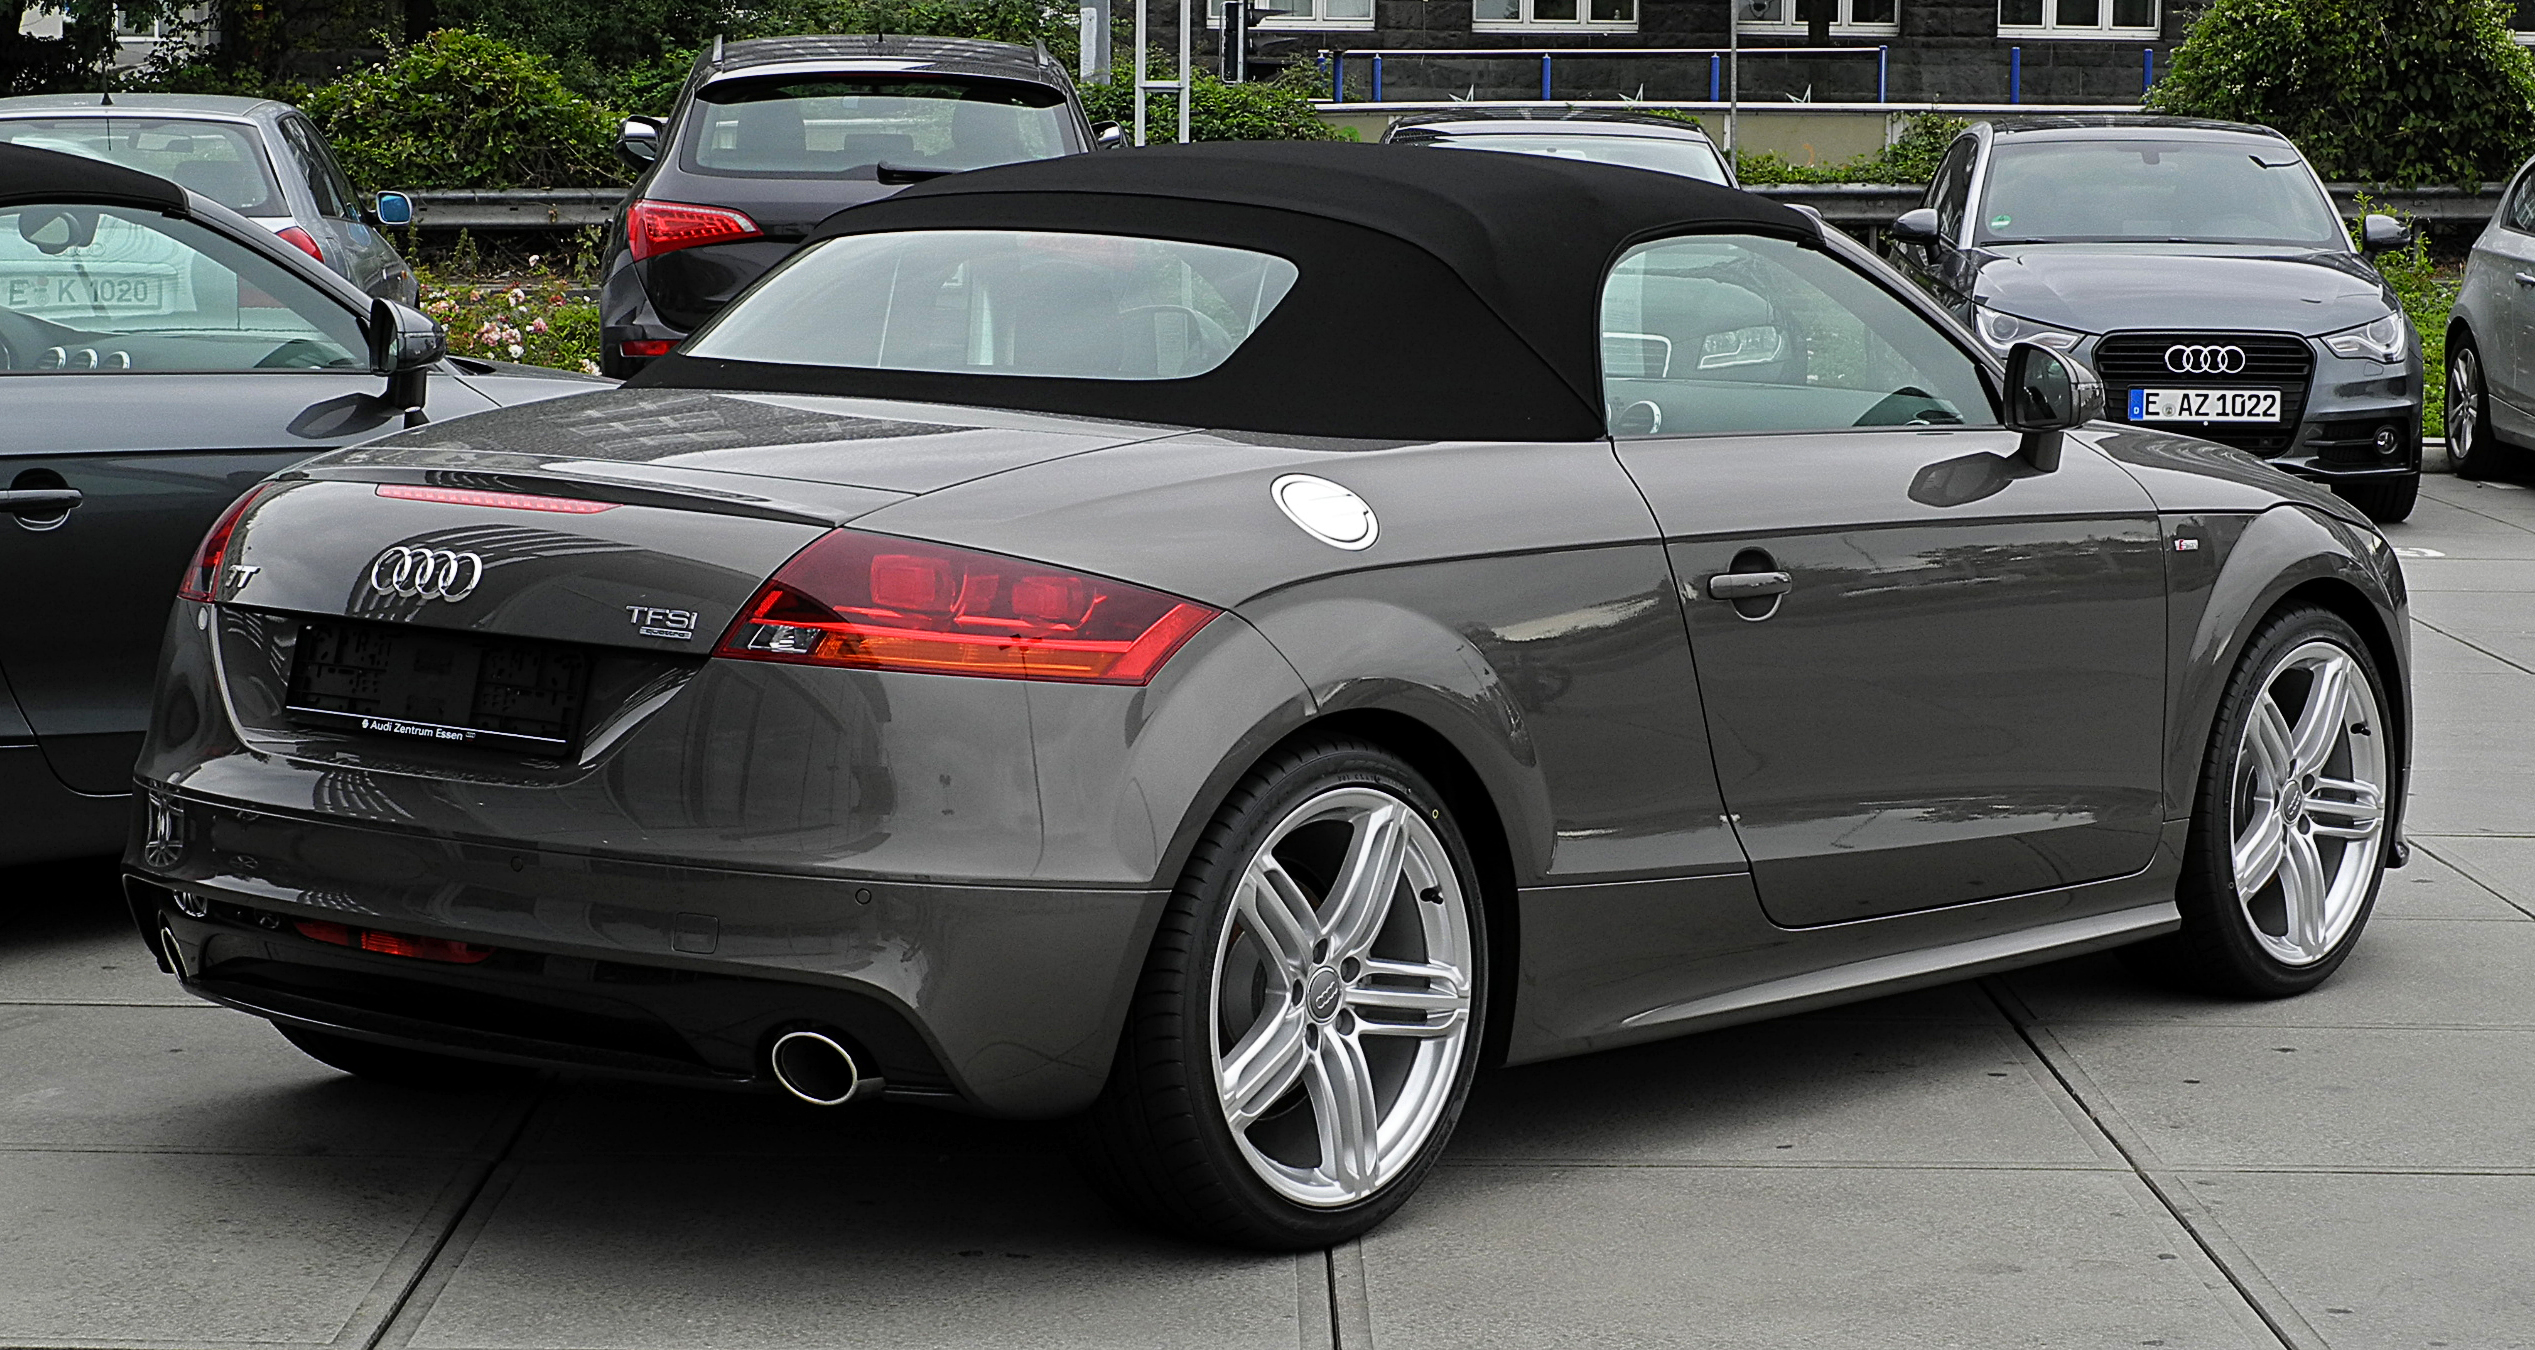 Description Audi TT Roadster 2.0 TFSI quattro Sline 8J, Facelift